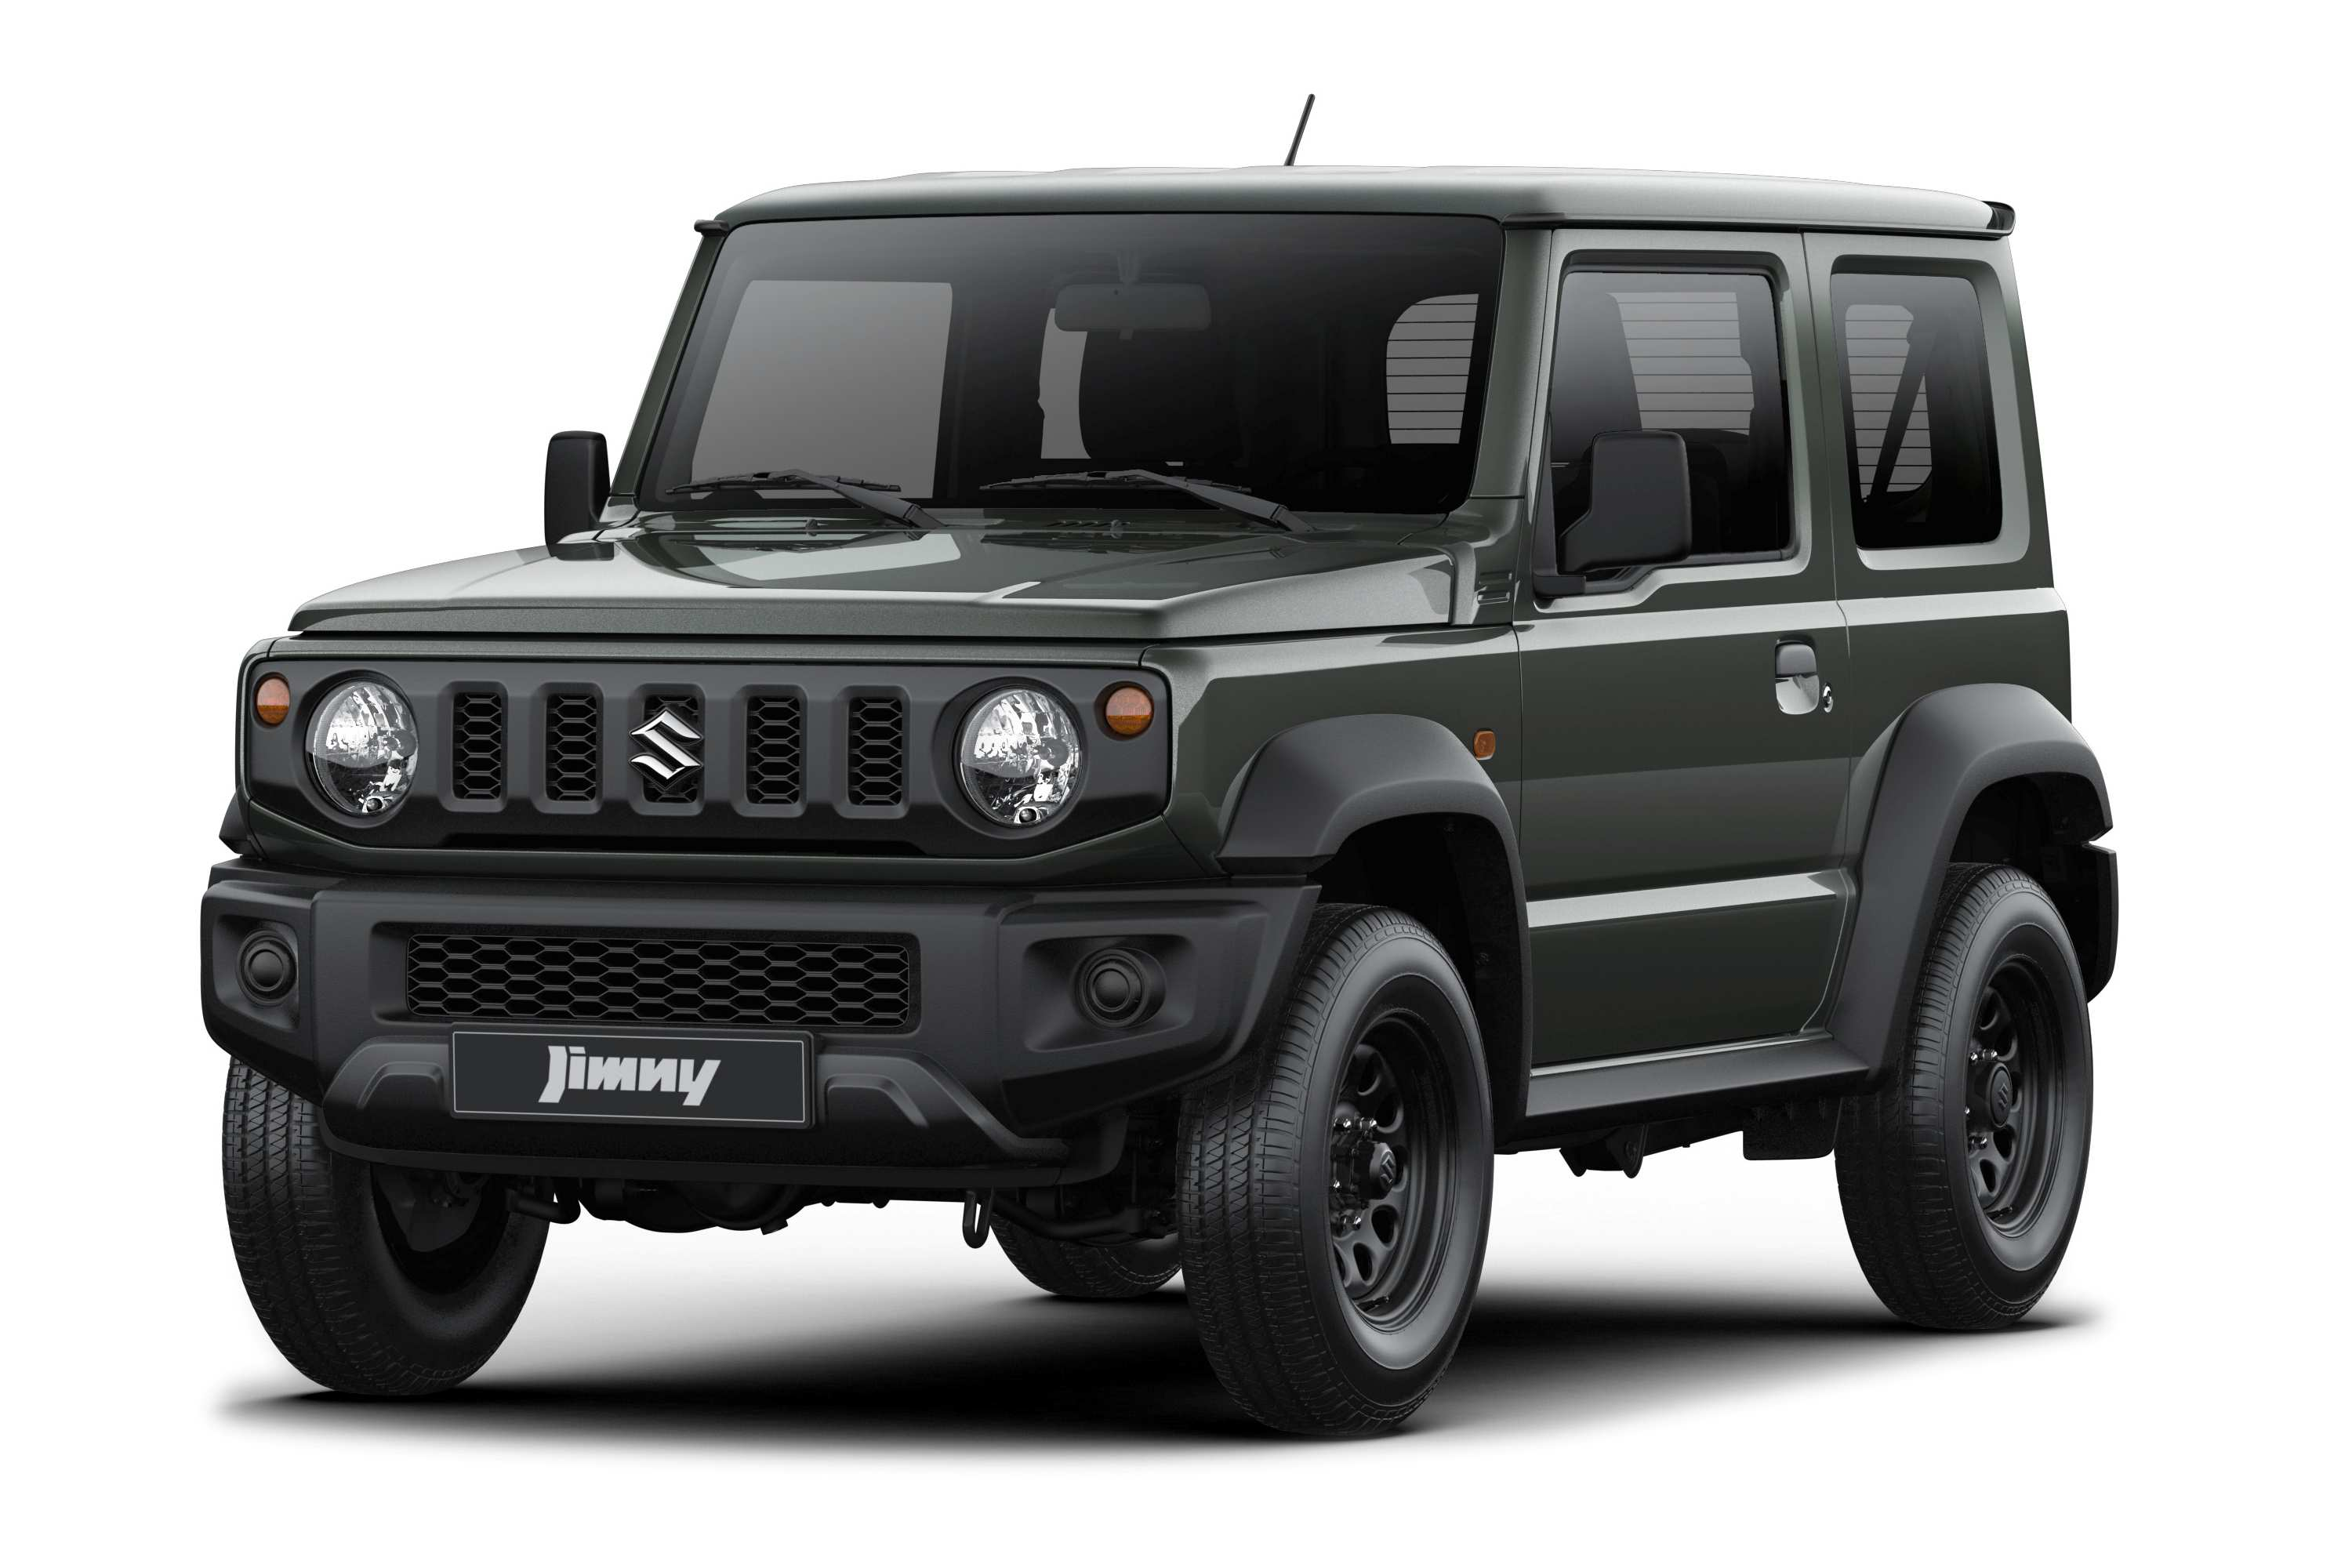 """The Jimny Lite will ride on standard 15"""" cast iron wheels, continuing to provide high levels of stability with low rolling resistance. Plastic textured side mirror covers, Halogen projector headlights without standard fog lamps are the only other notable exterior differences to the Jimny already on our roads."""